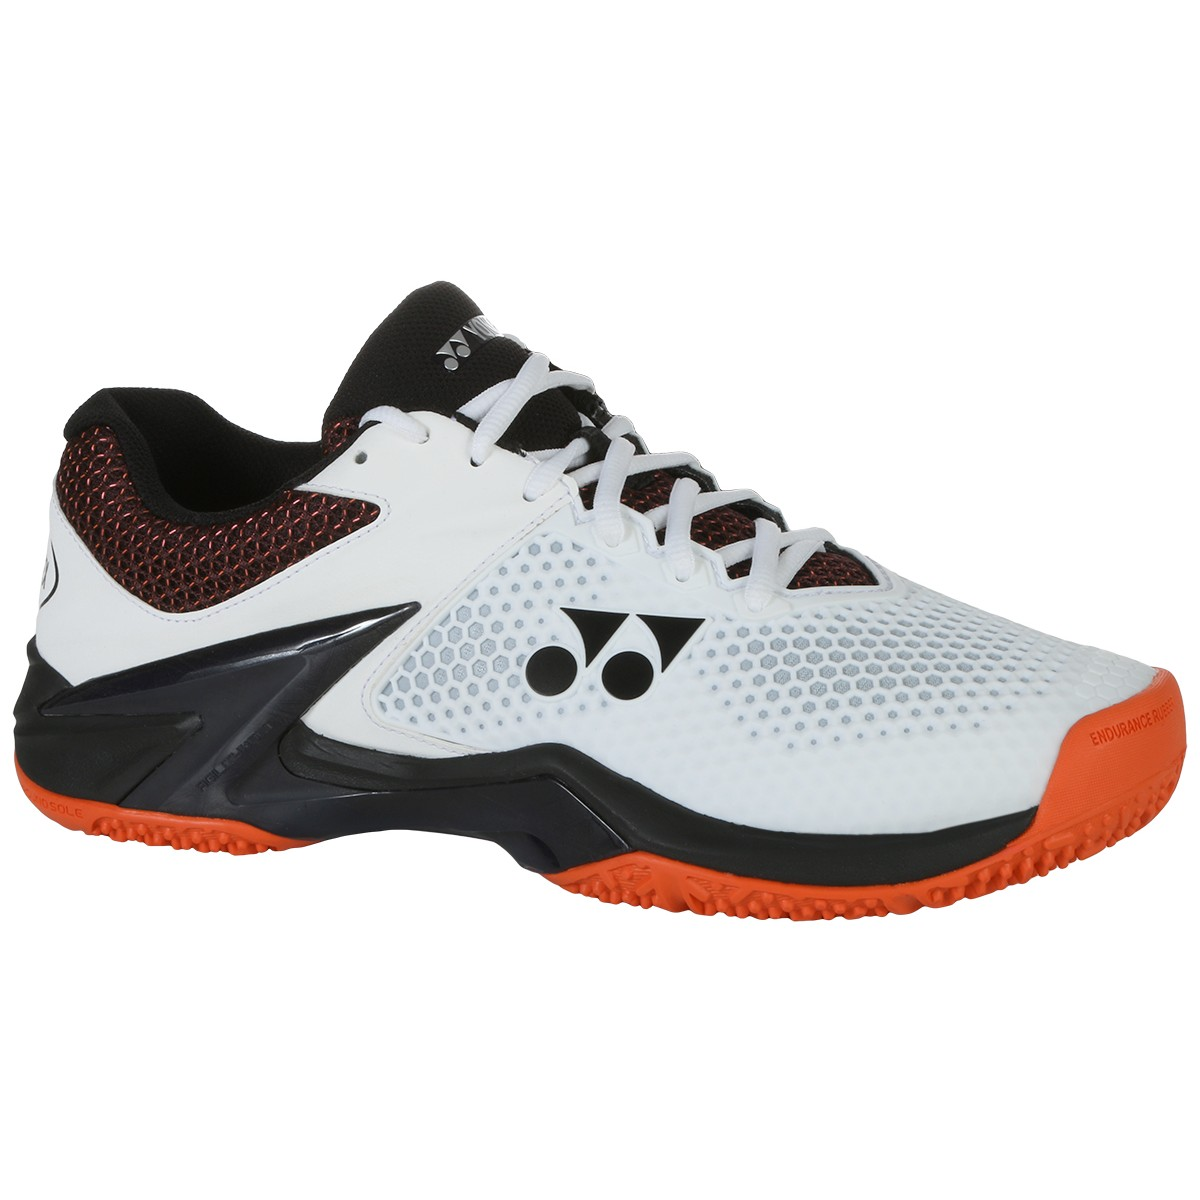 ZAPATILLAS YONEX POWER CUSHION ECLIPSION 2 TIERRA BATIDA